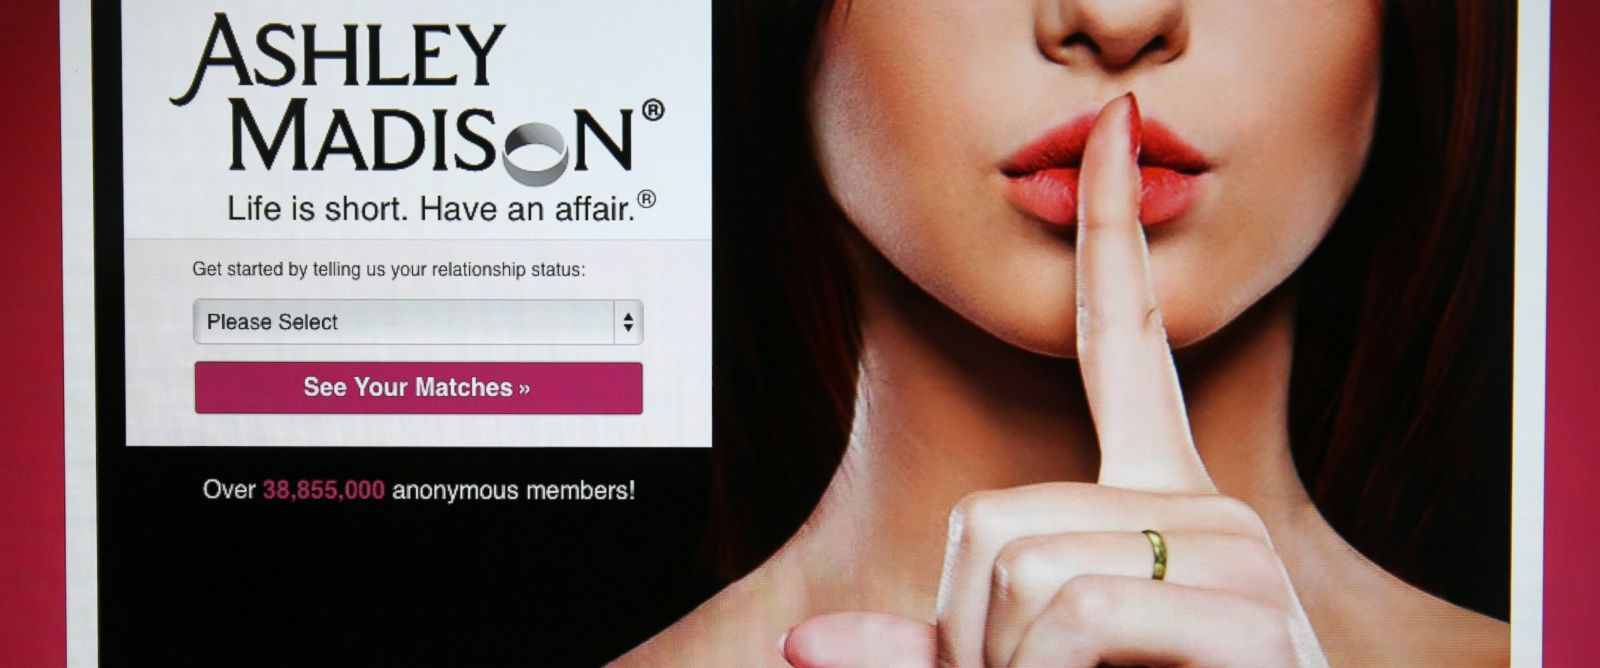 PHOTO: The Ashley Madison website is displayed on Aug. 19, 2015 in London.